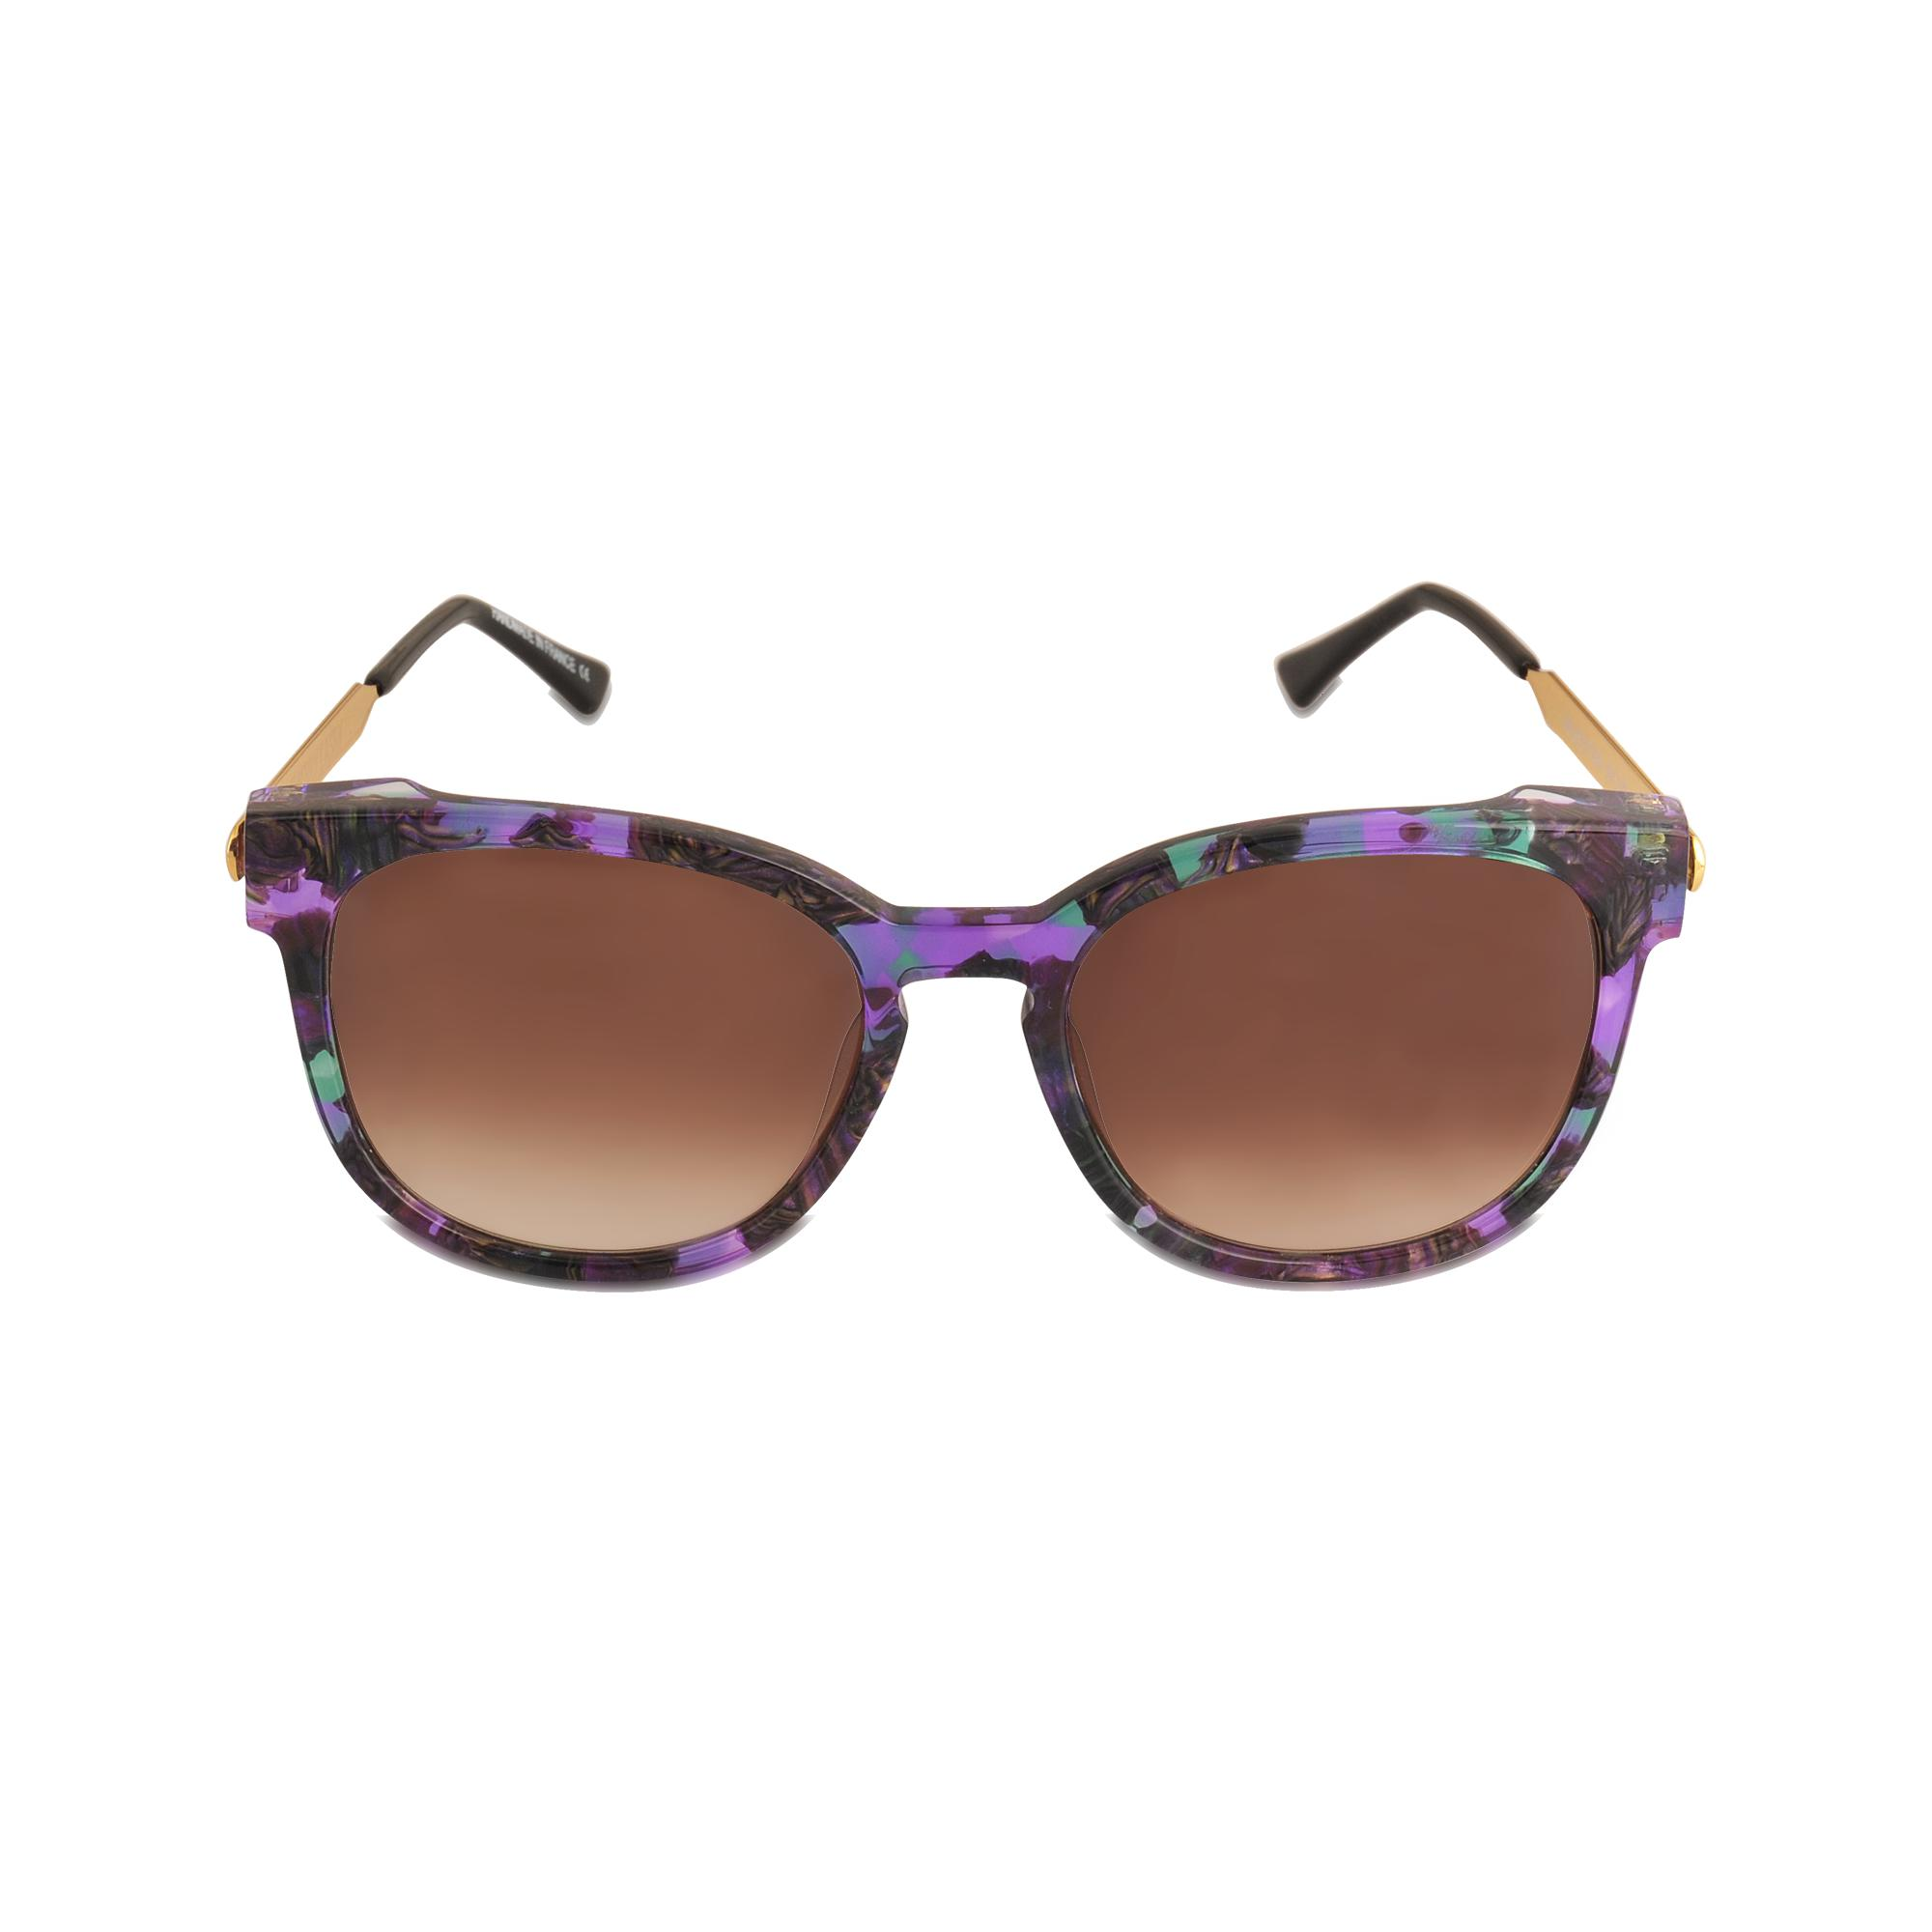 Neuroty sunglasses Thierry Lasry ZXpnR9